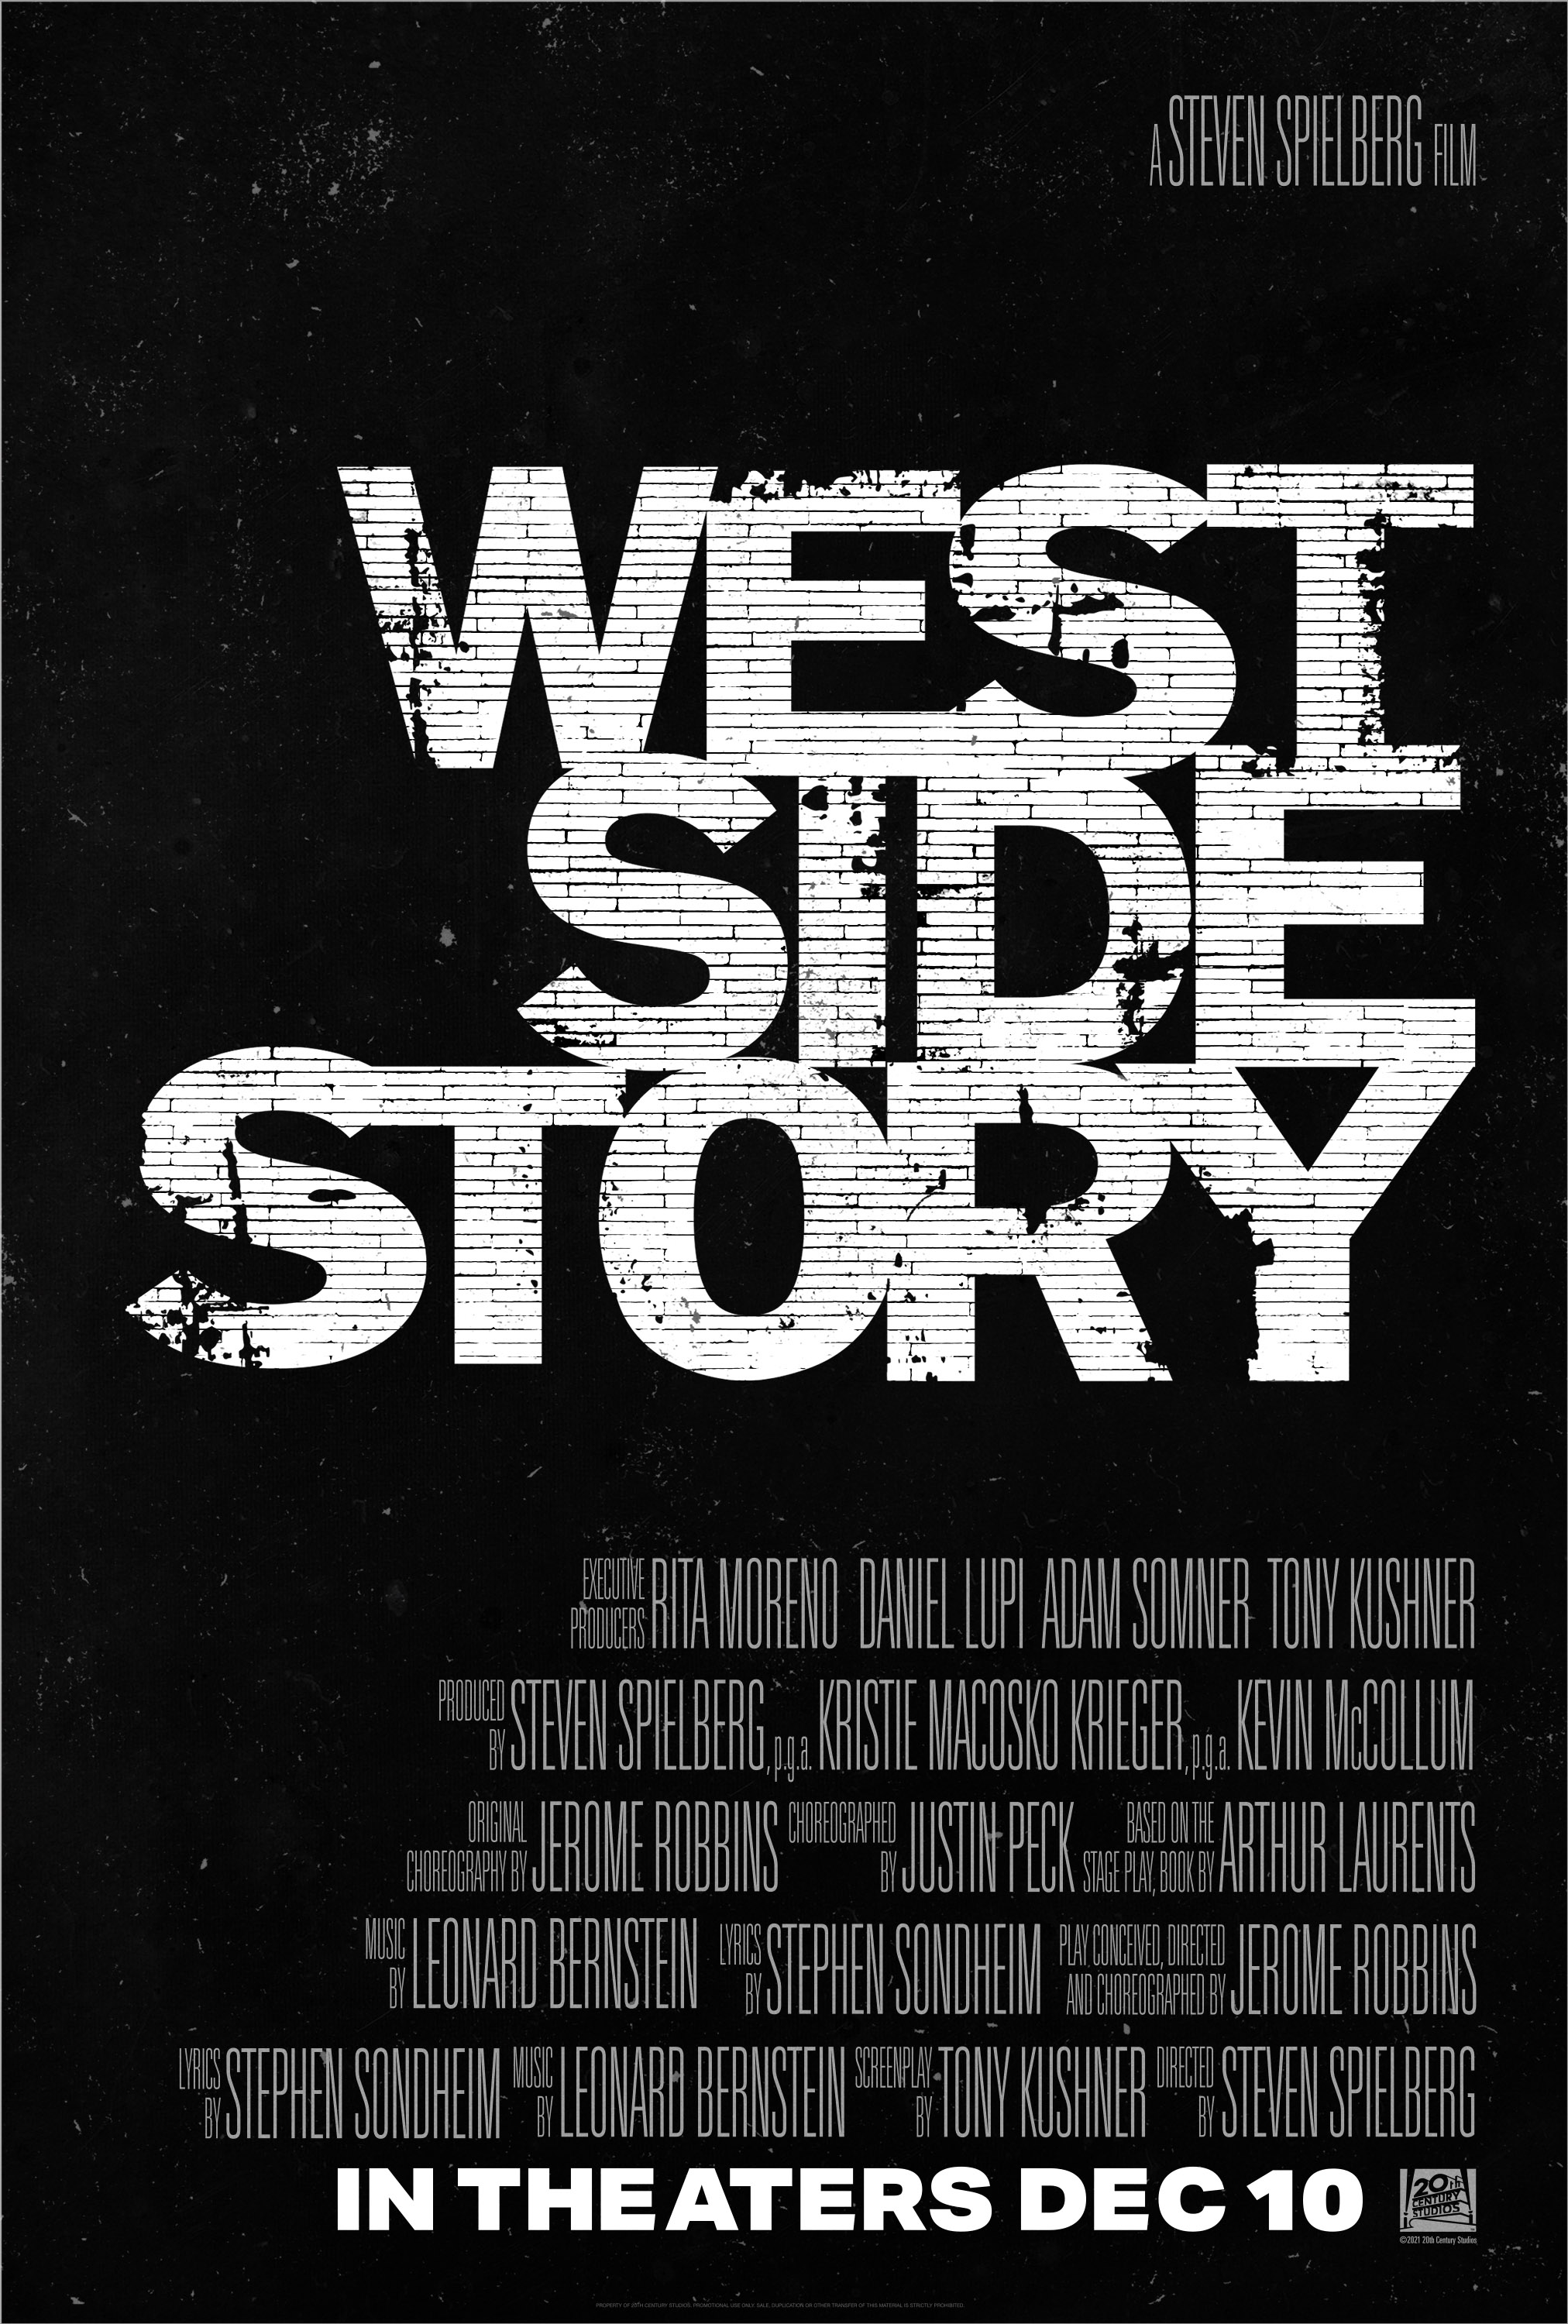 Steven Spielberg May Join West Side Story Lecture Series